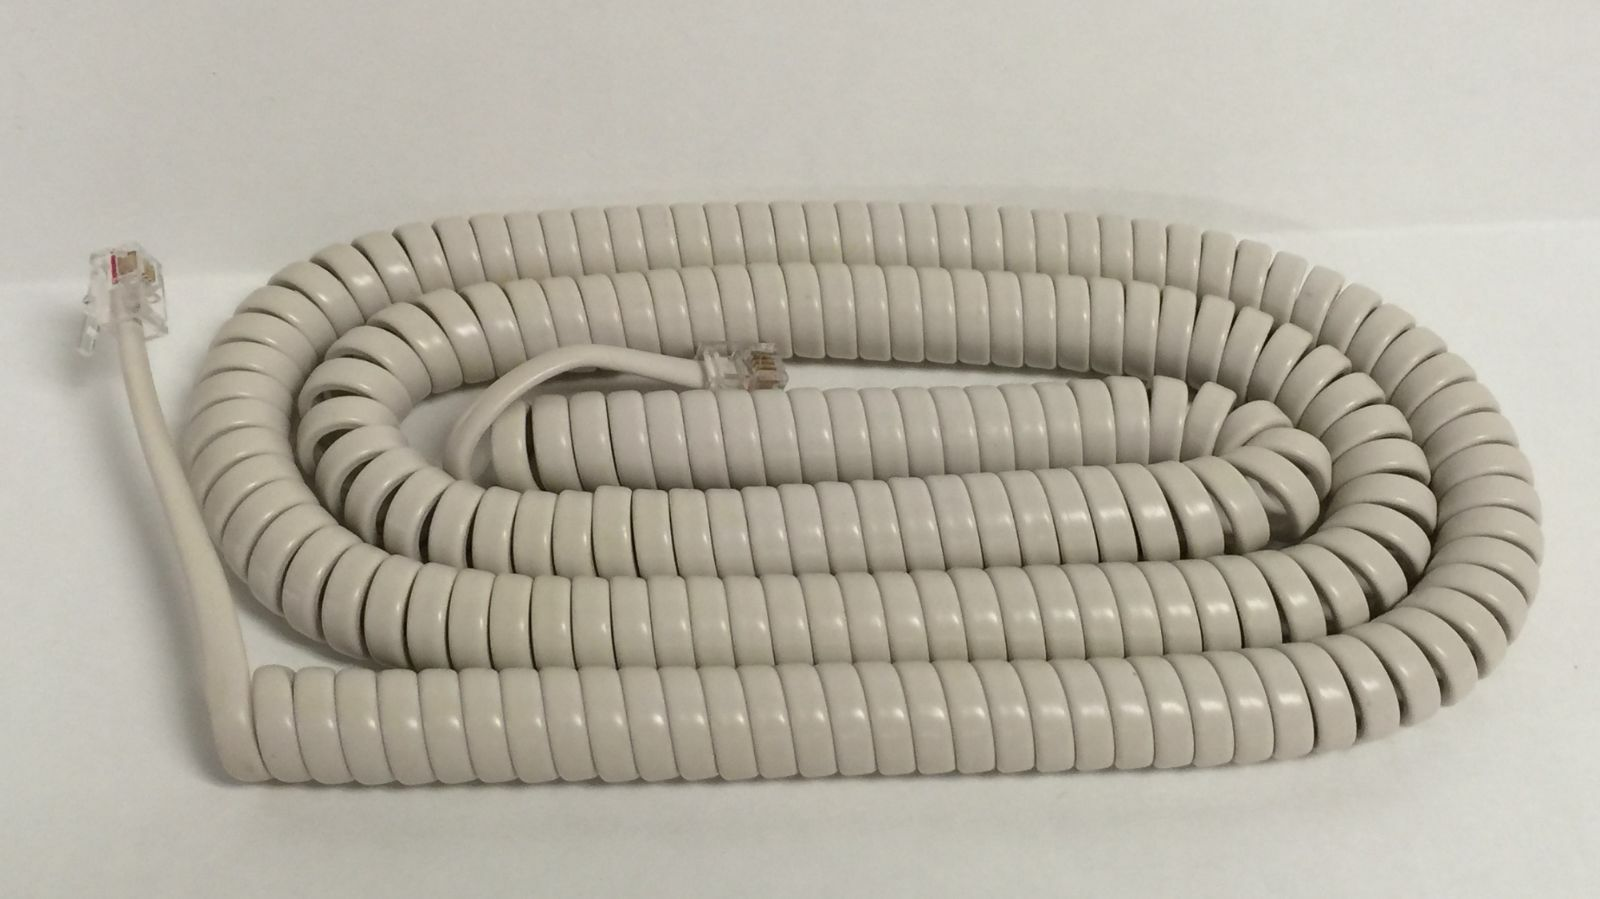 New 25 Ft Long Handset Receiver Curly Cord for Panasonic Phone - off white color